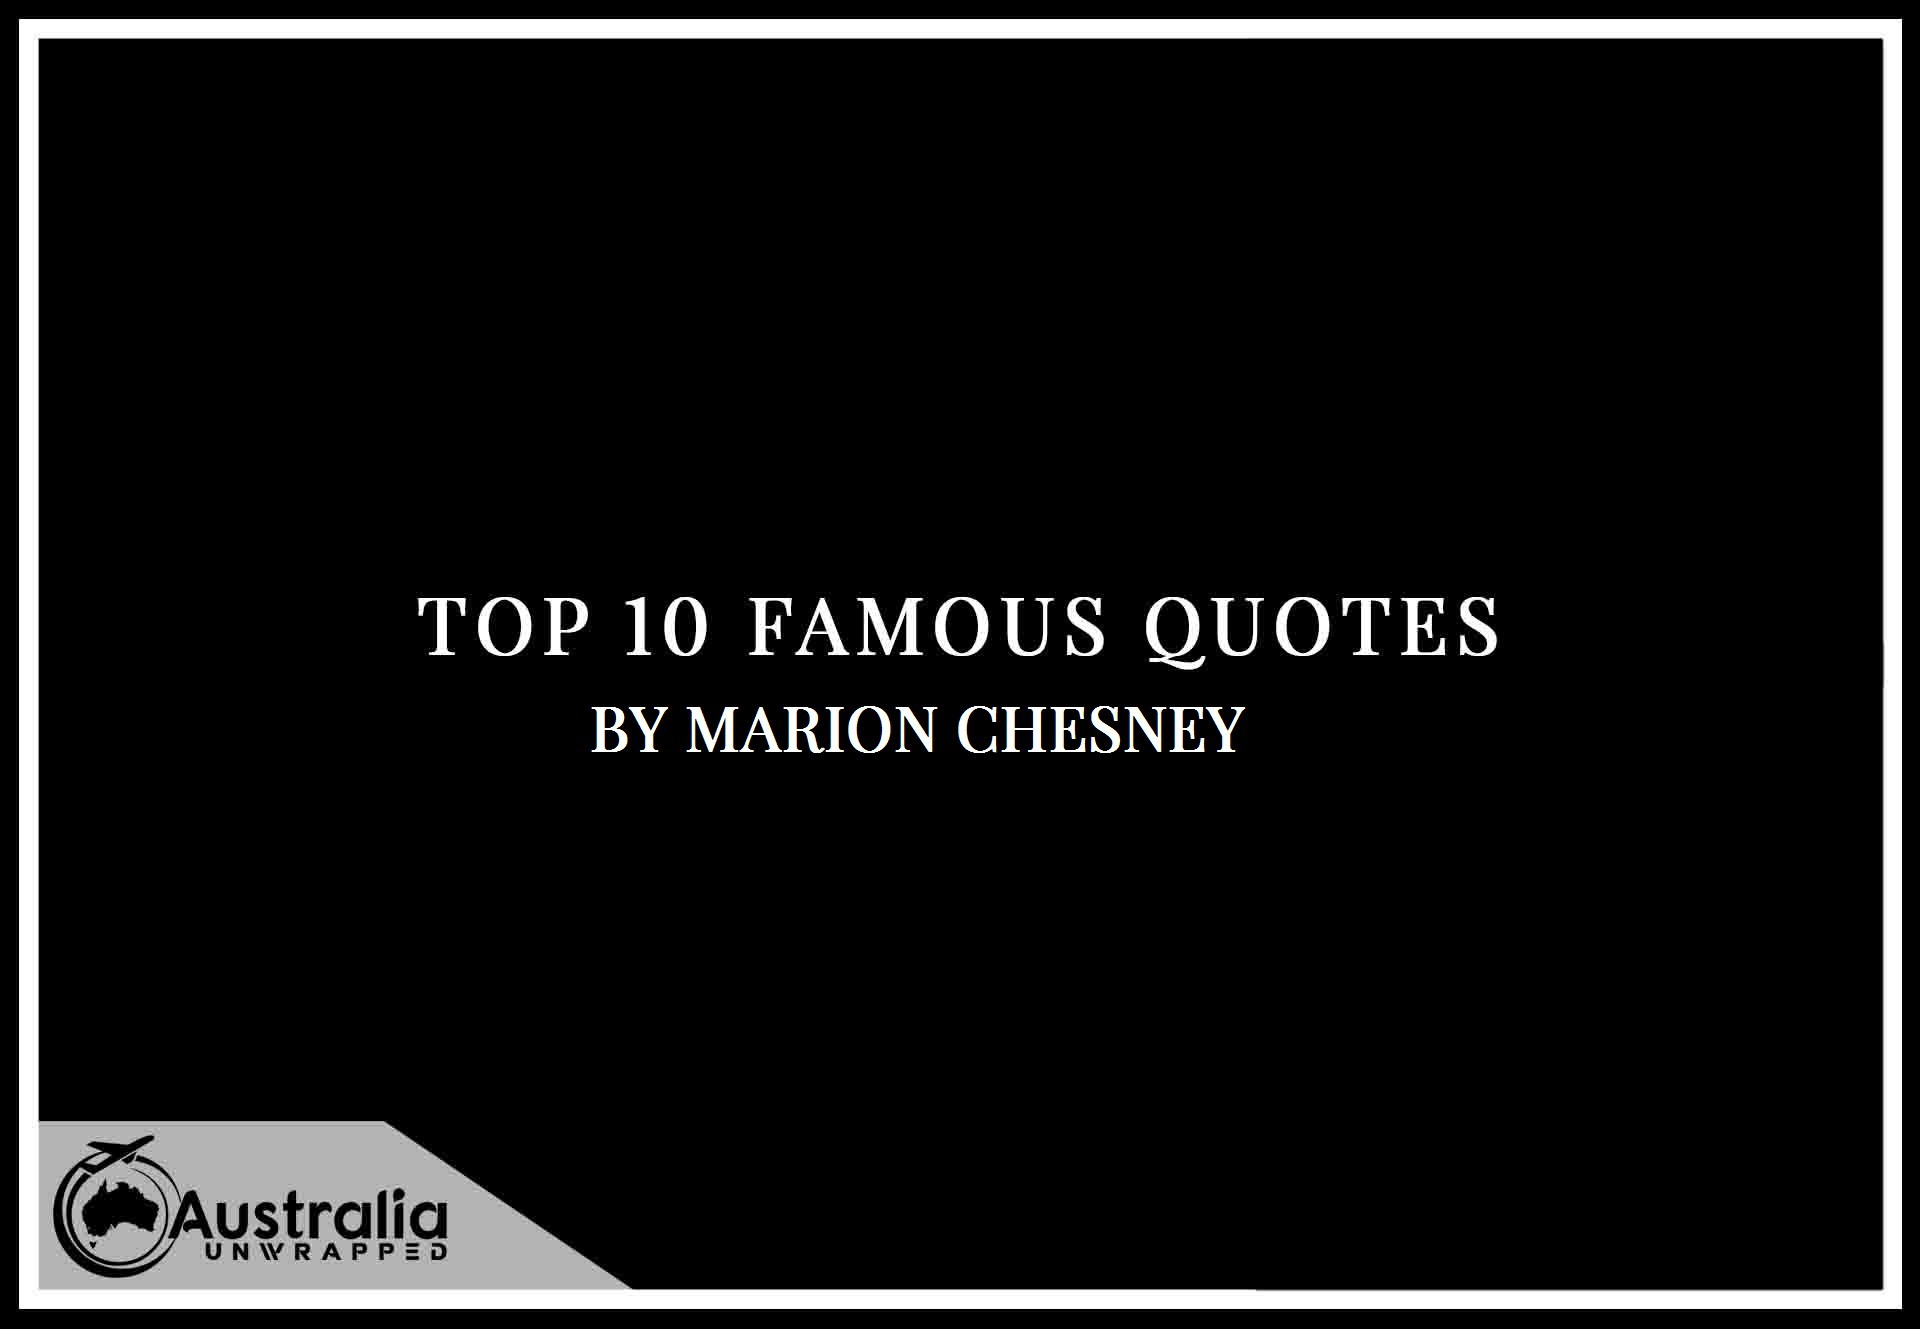 Marion Chesney's Top 10 Popular and Famous Quotes